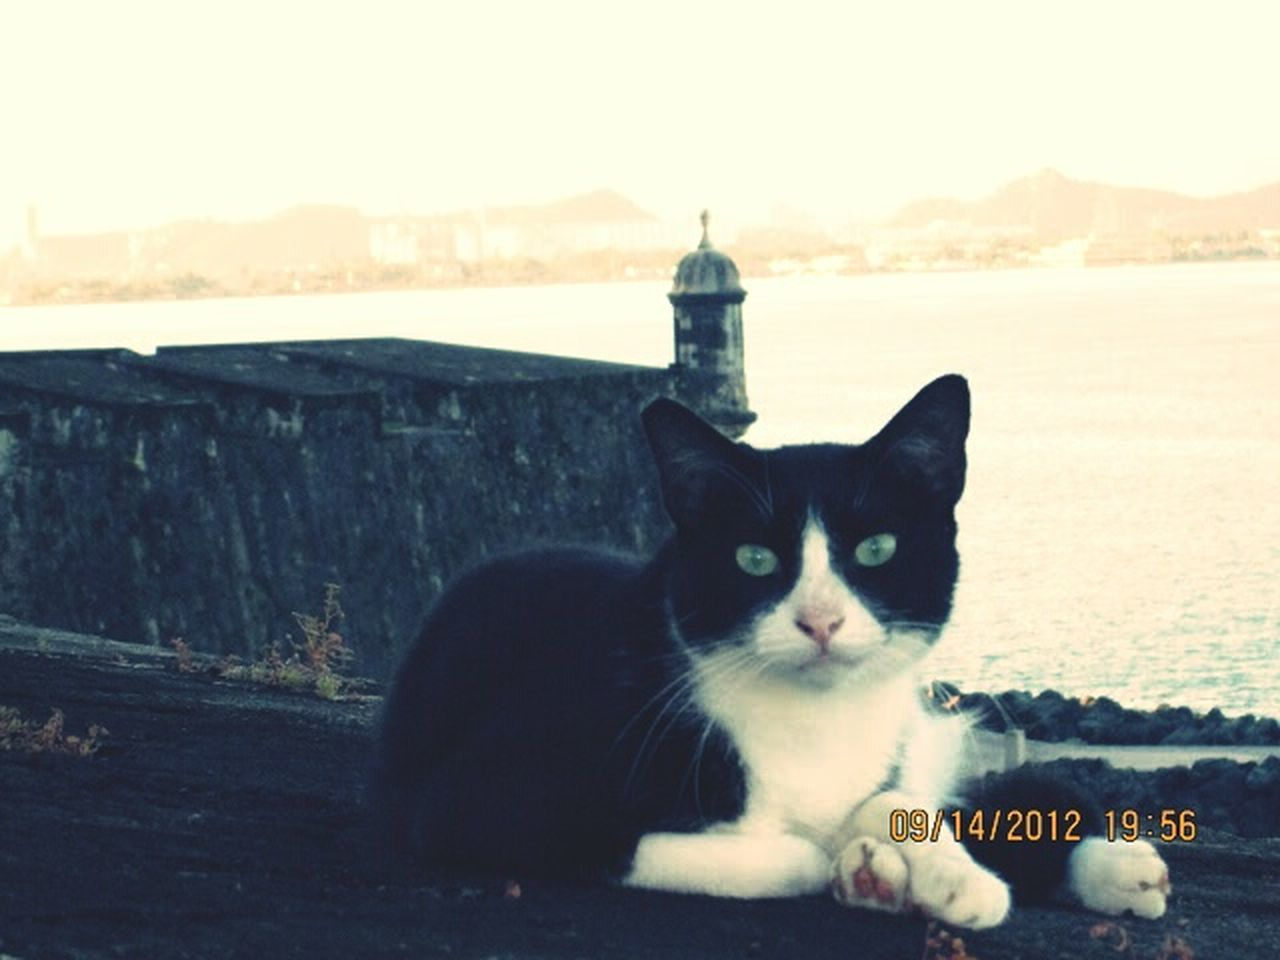 sea, animal themes, one animal, domestic cat, pets, beach, portrait, domestic animals, looking at camera, sunset, outdoors, no people, water, mammal, sky, day, nature